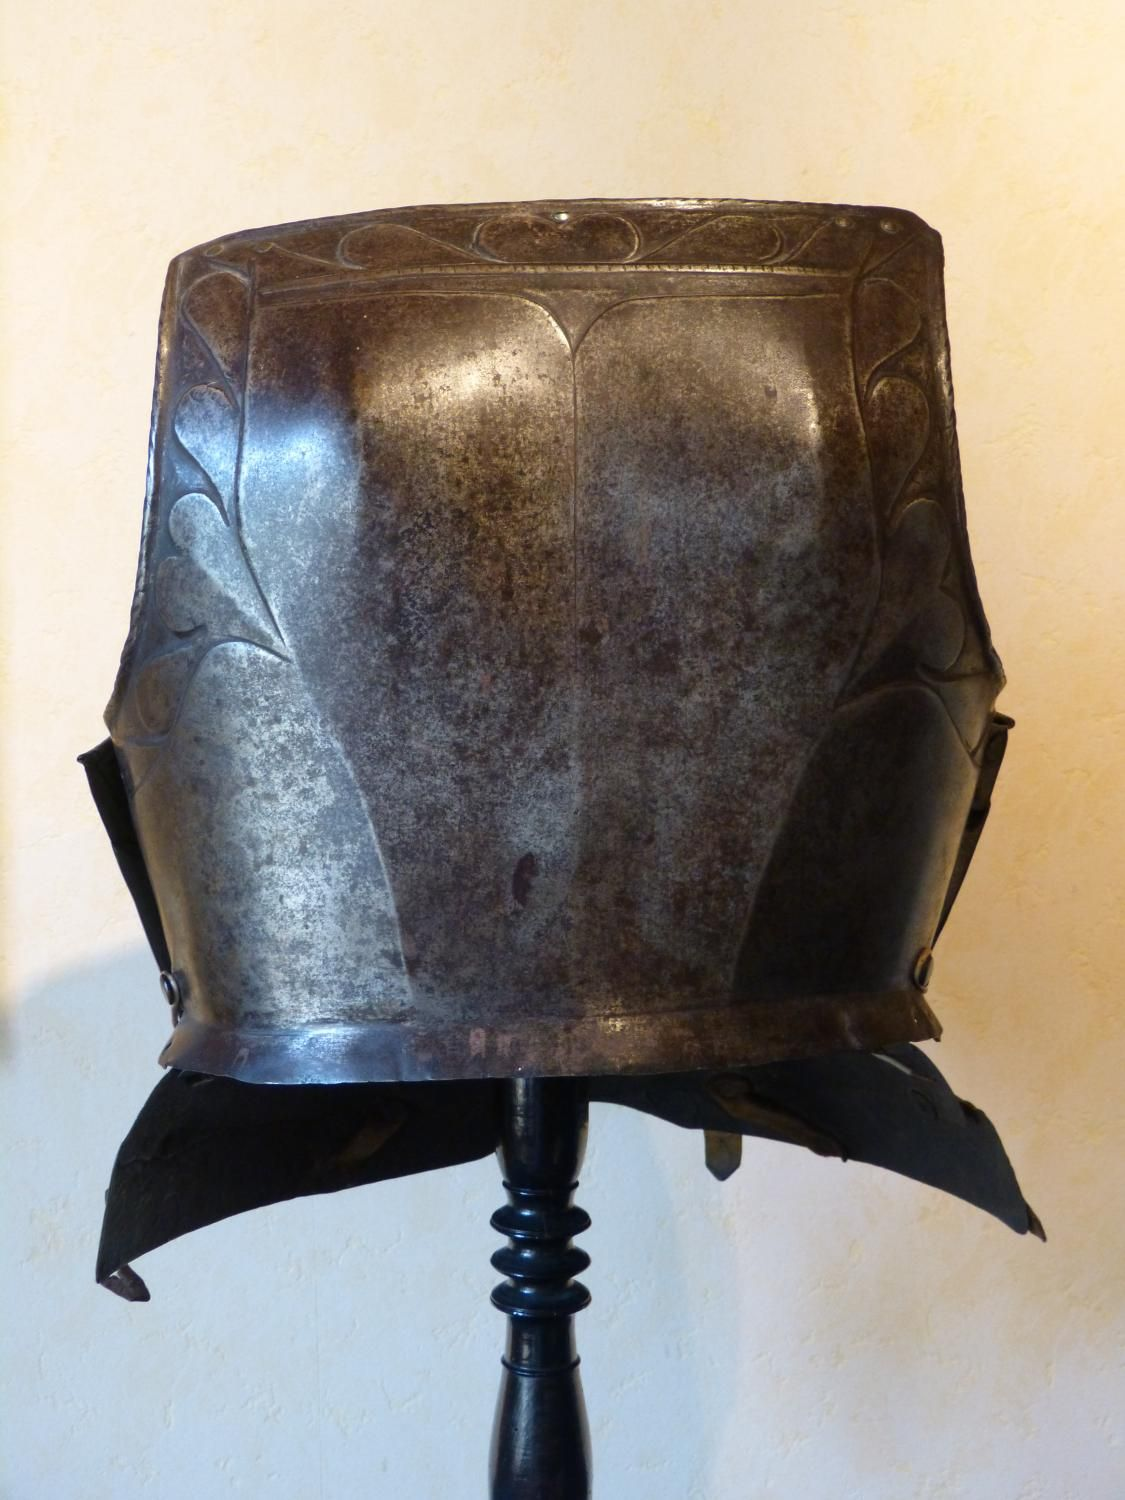 Antique for sale German breastplate of cuirass armor or